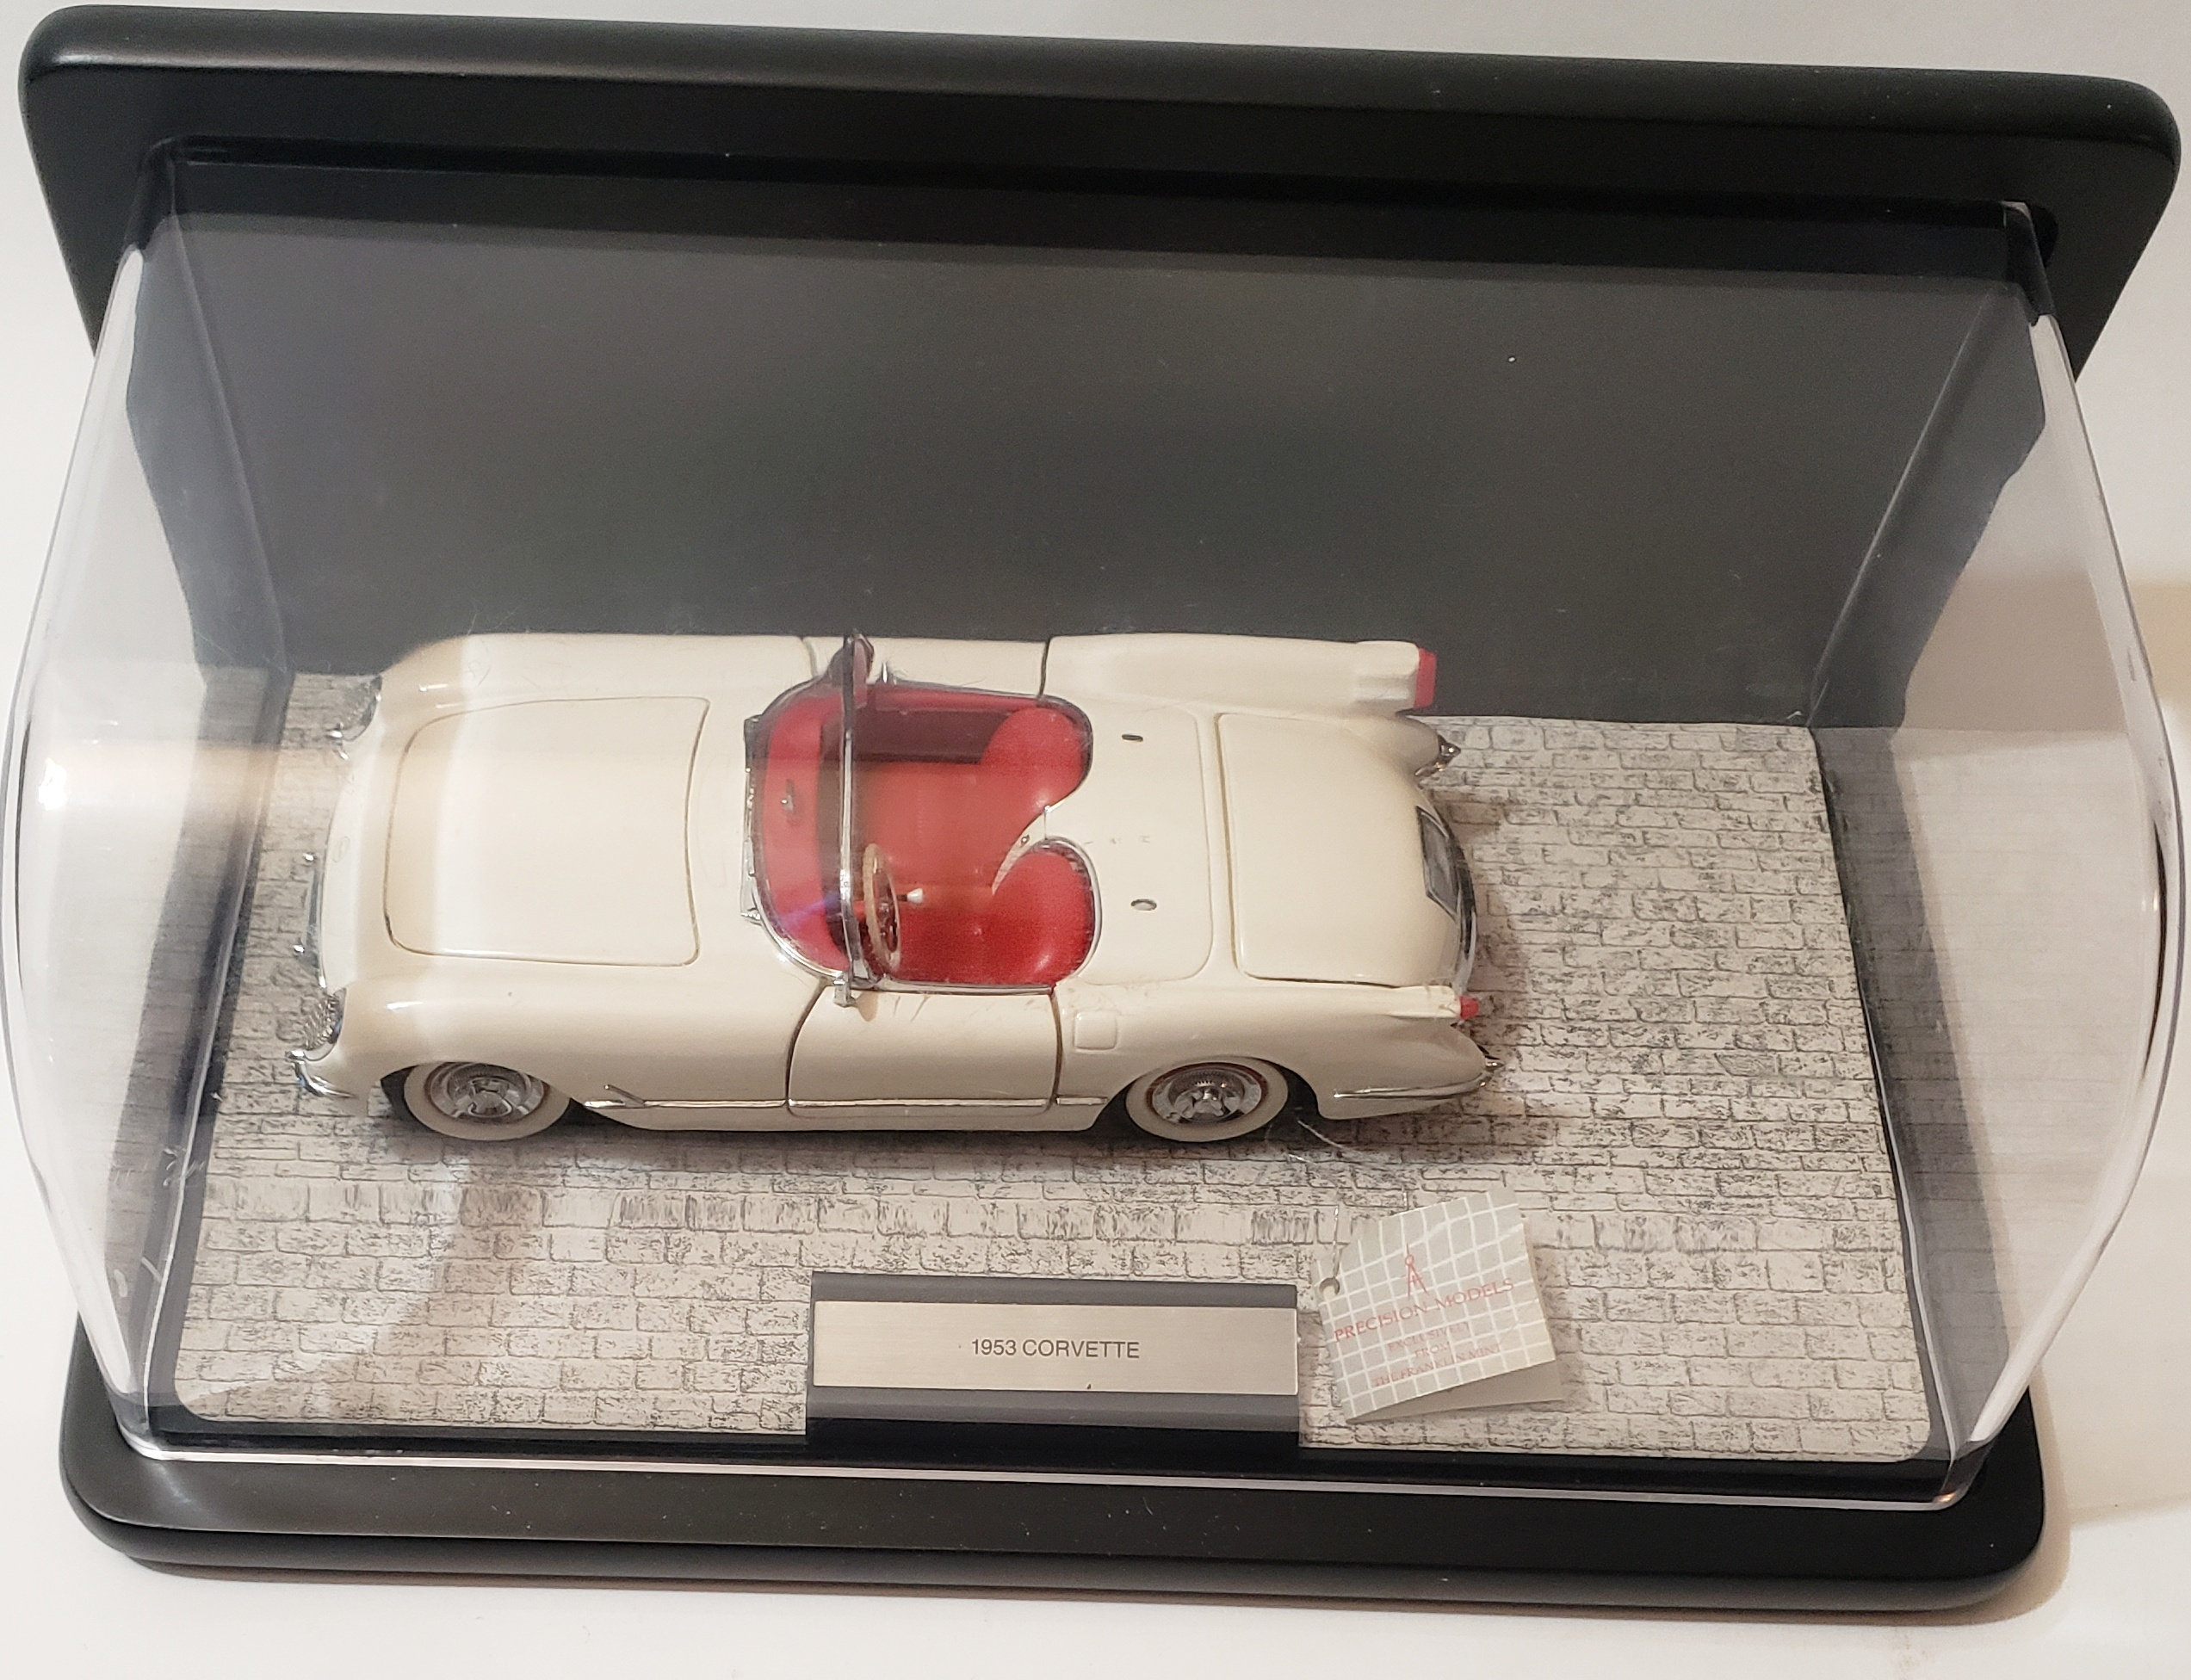 Franklin Mint, Precision Models: 1953 Chevrolet Corvette, Die Cast Model Car